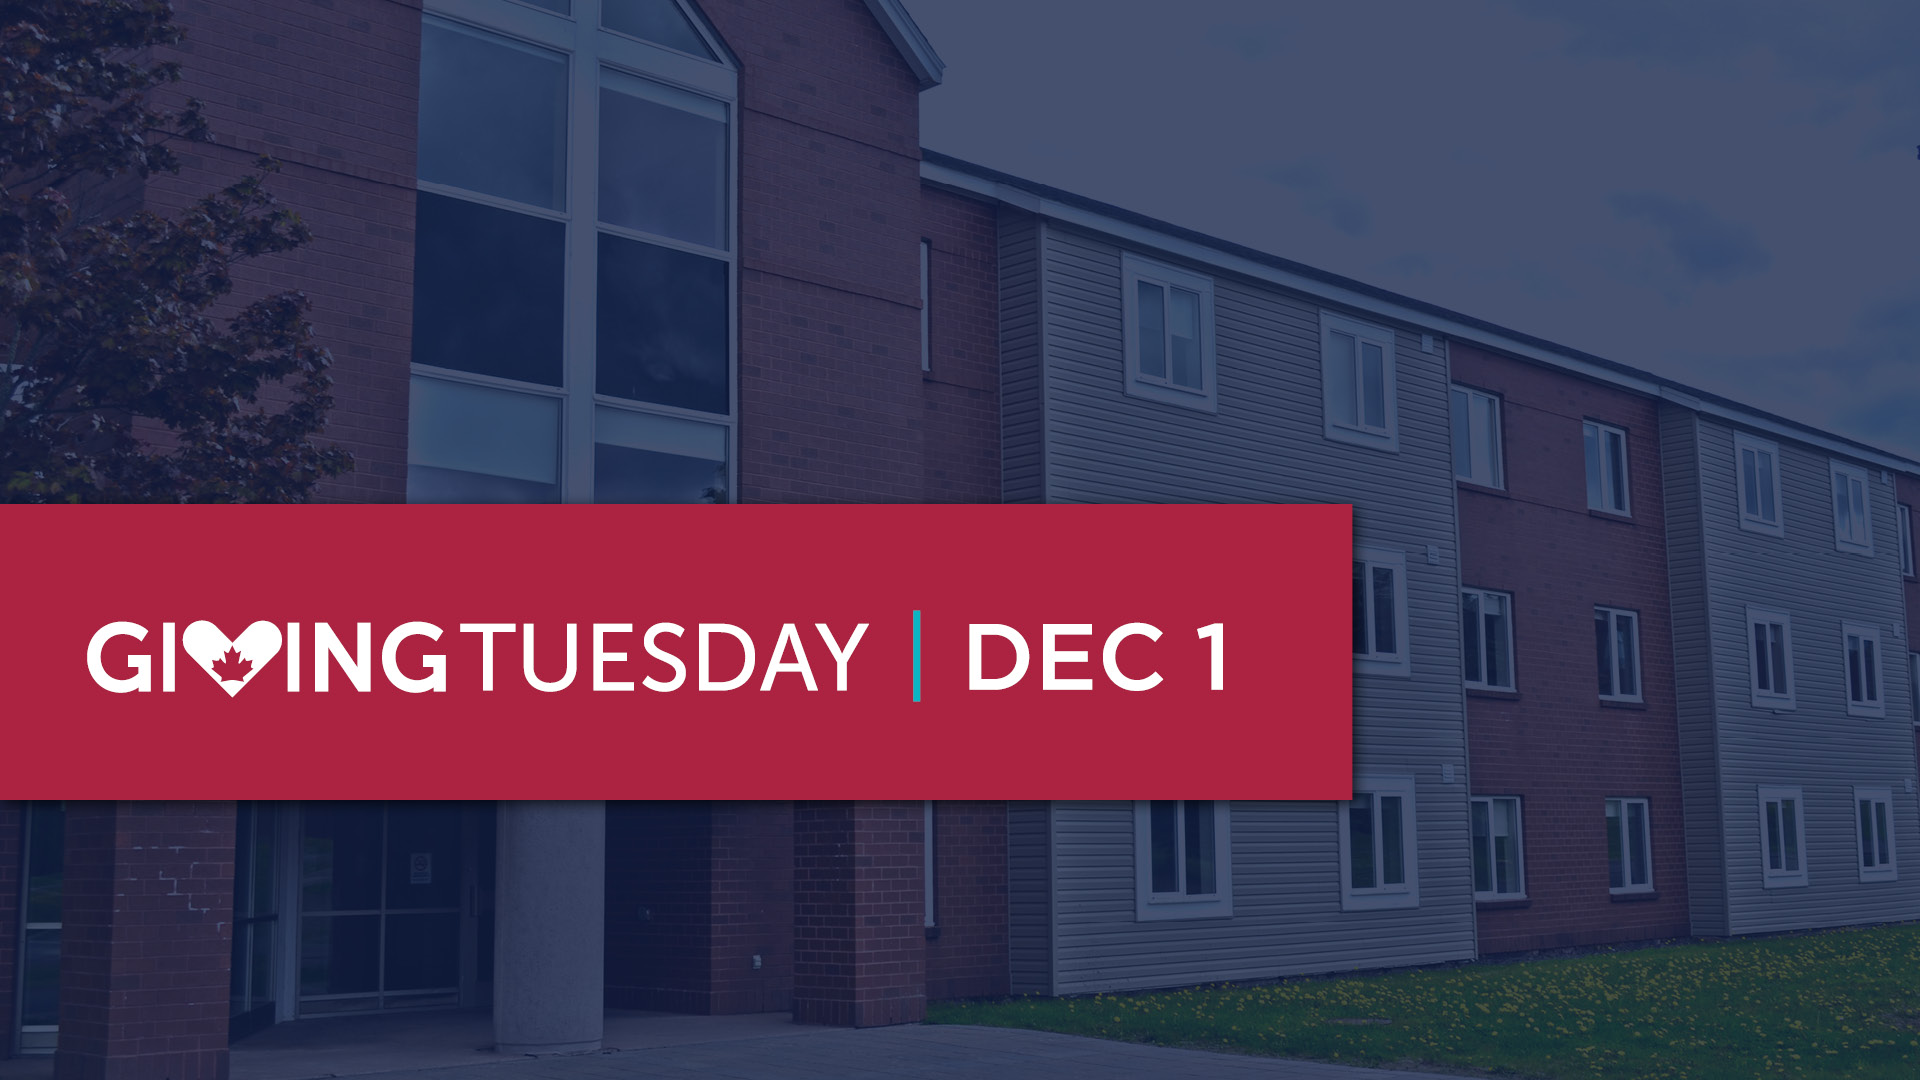 Giving Tuesday: Dec 1, 2020